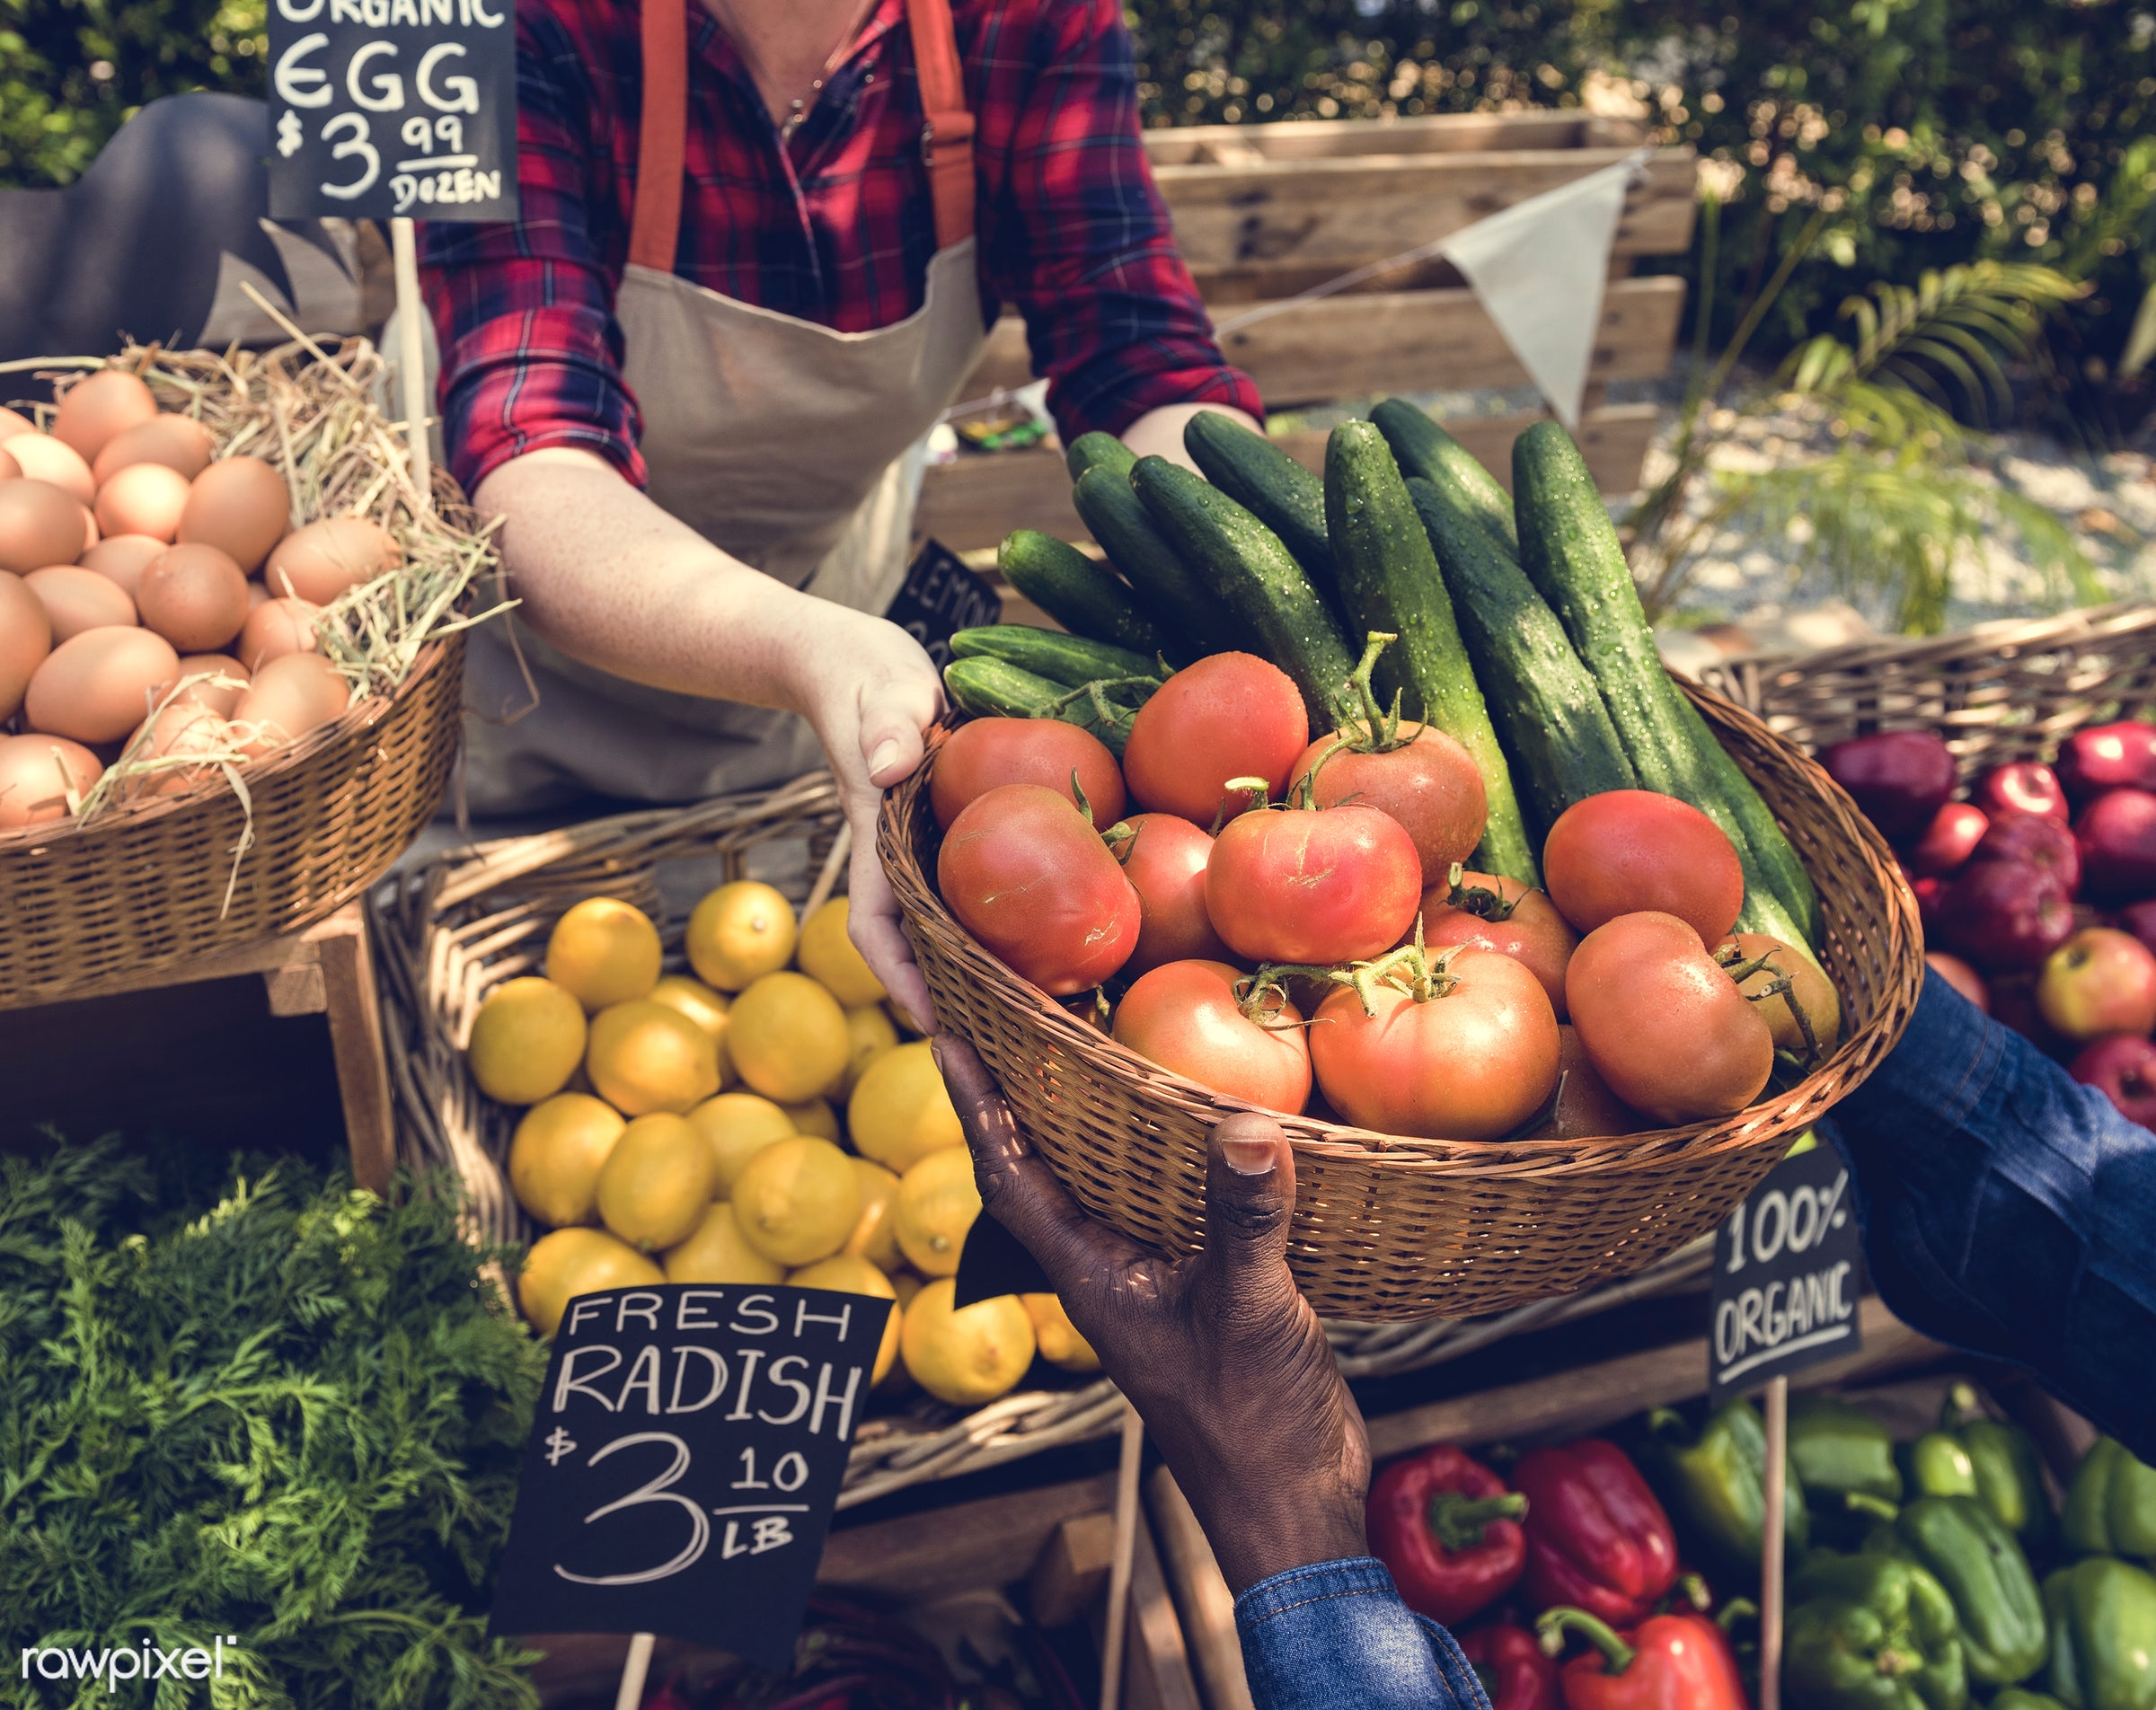 grocery, shop, nutritious, store, tomato, holding, bell pepper, egg, cucumber, farmer, fresh, healthy eating, marketplace,...